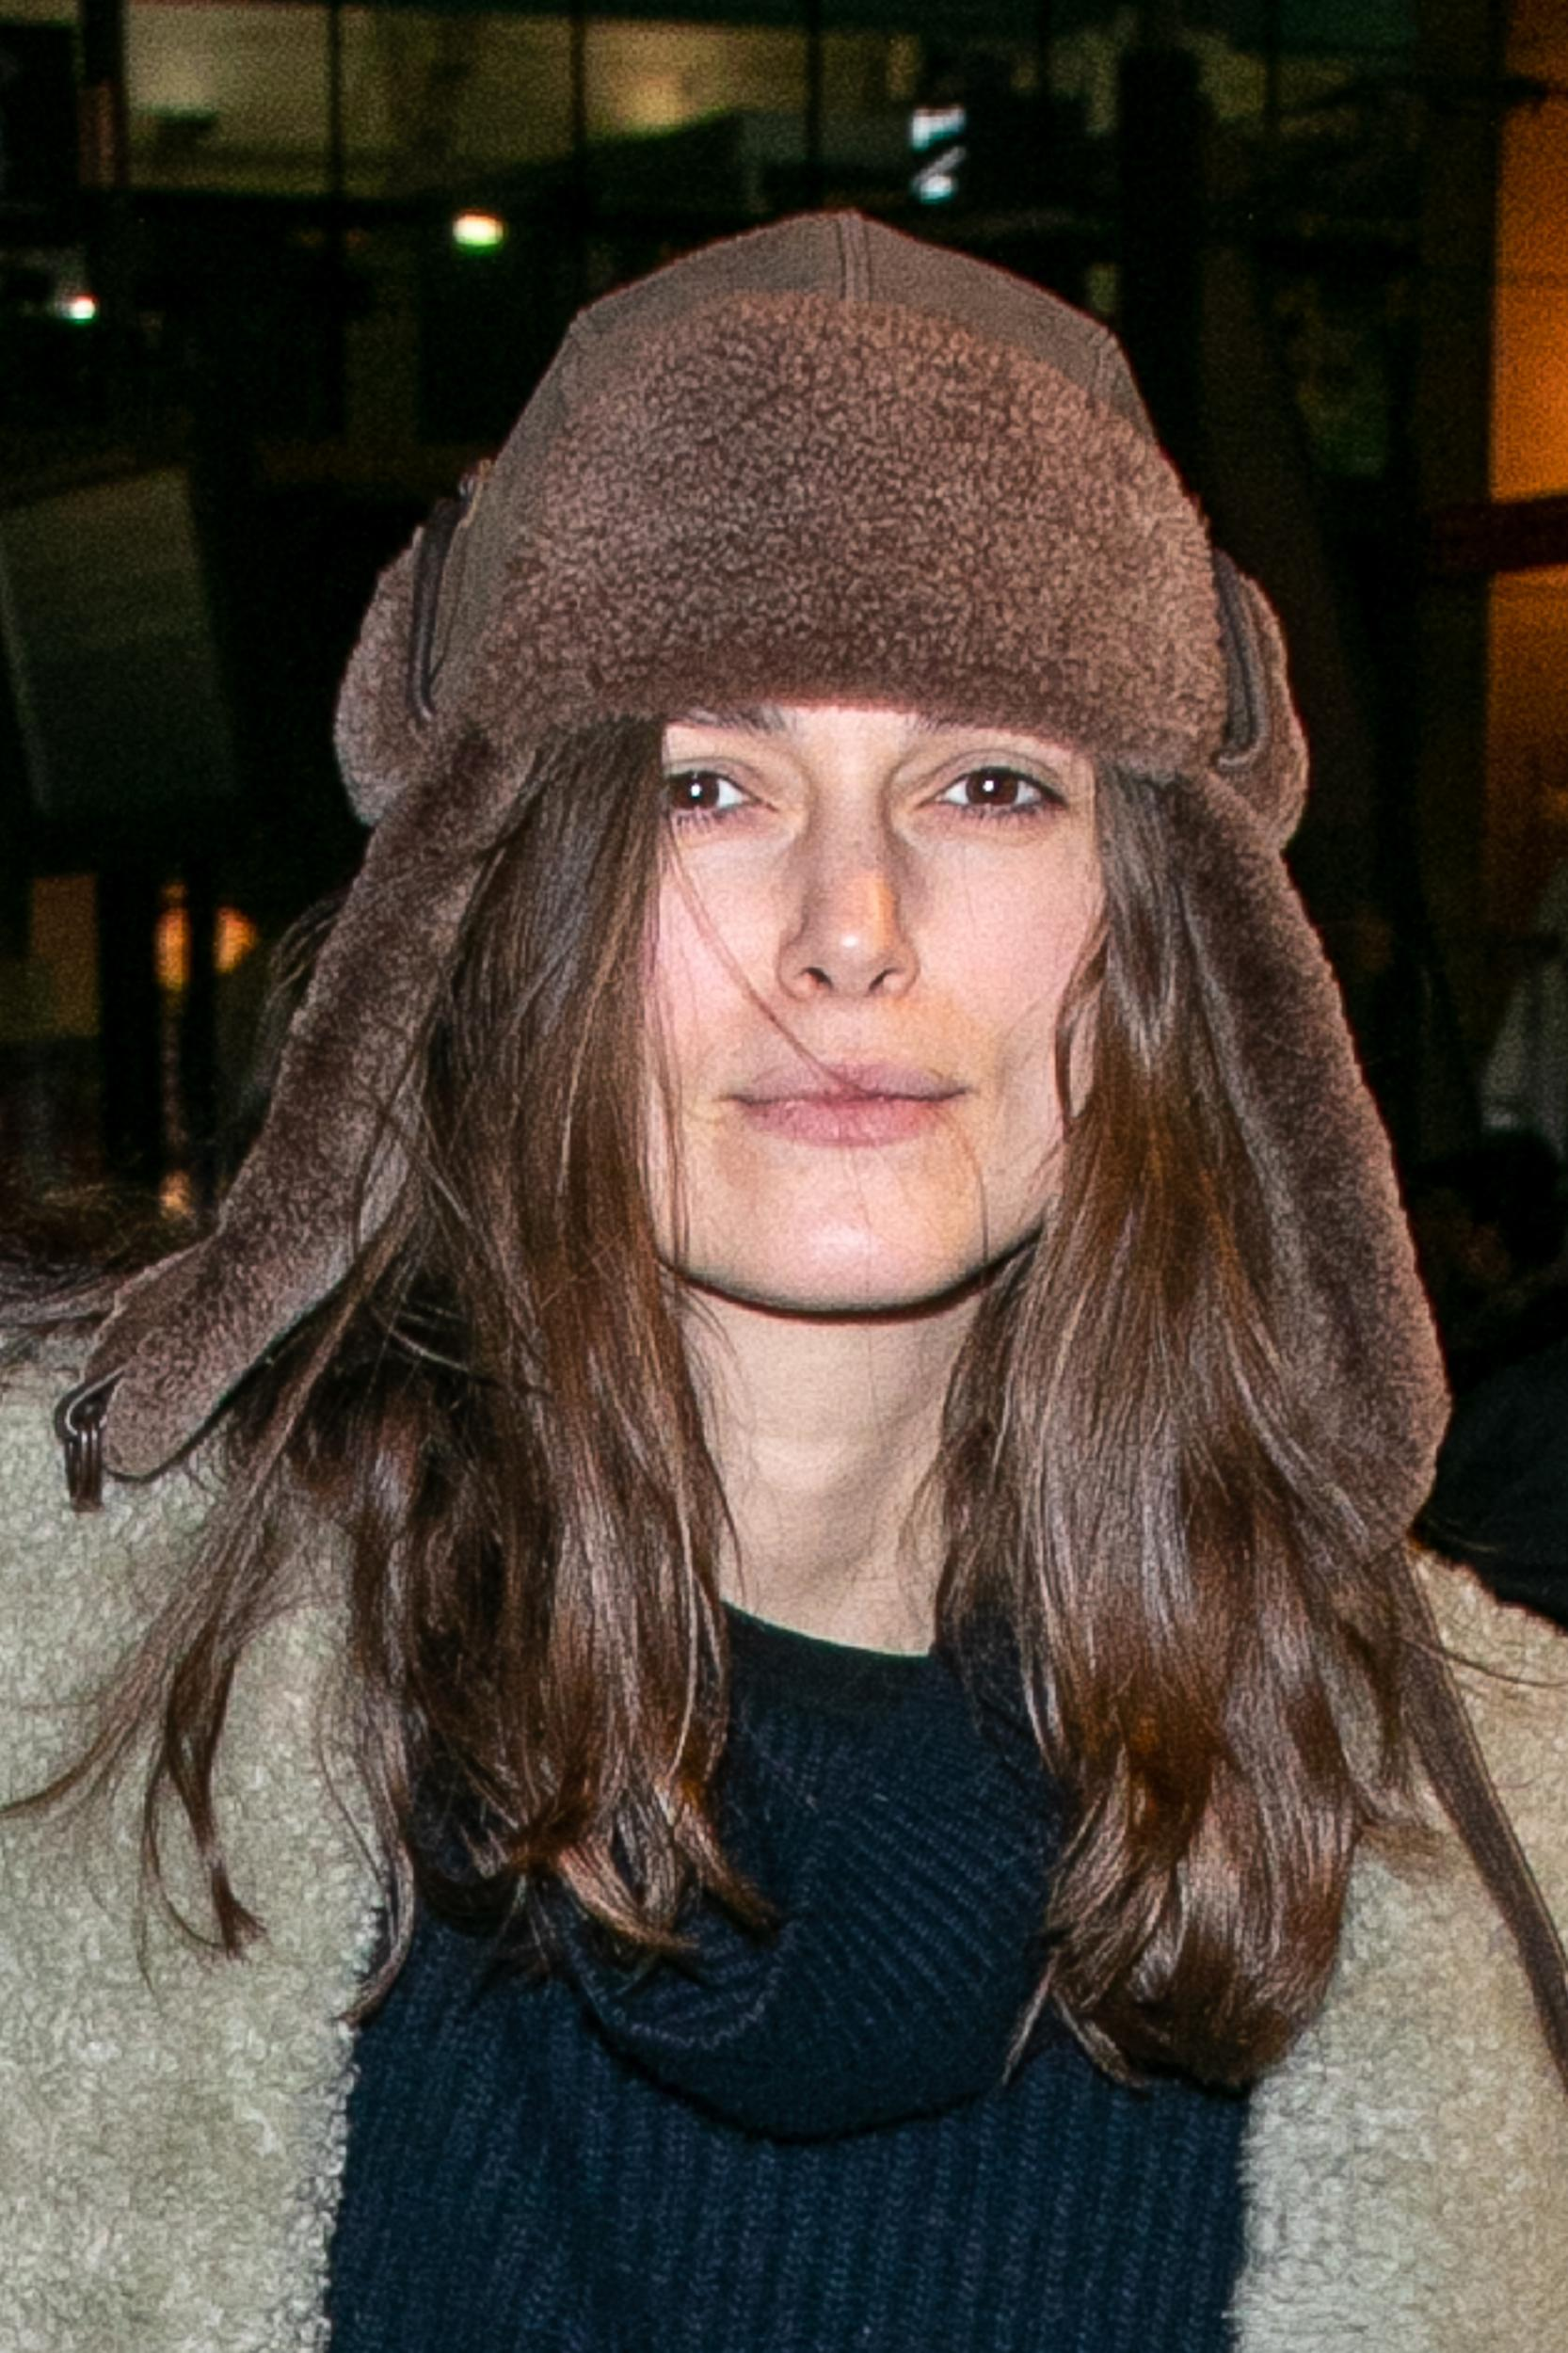 PARIS, FRANCE - JANUARY 09: Actress Keira Knightley is seen arriving at Gare du Nord station from London on January 09, 2019 in Paris, France. (Photo by Marc Piasecki/GC Images)